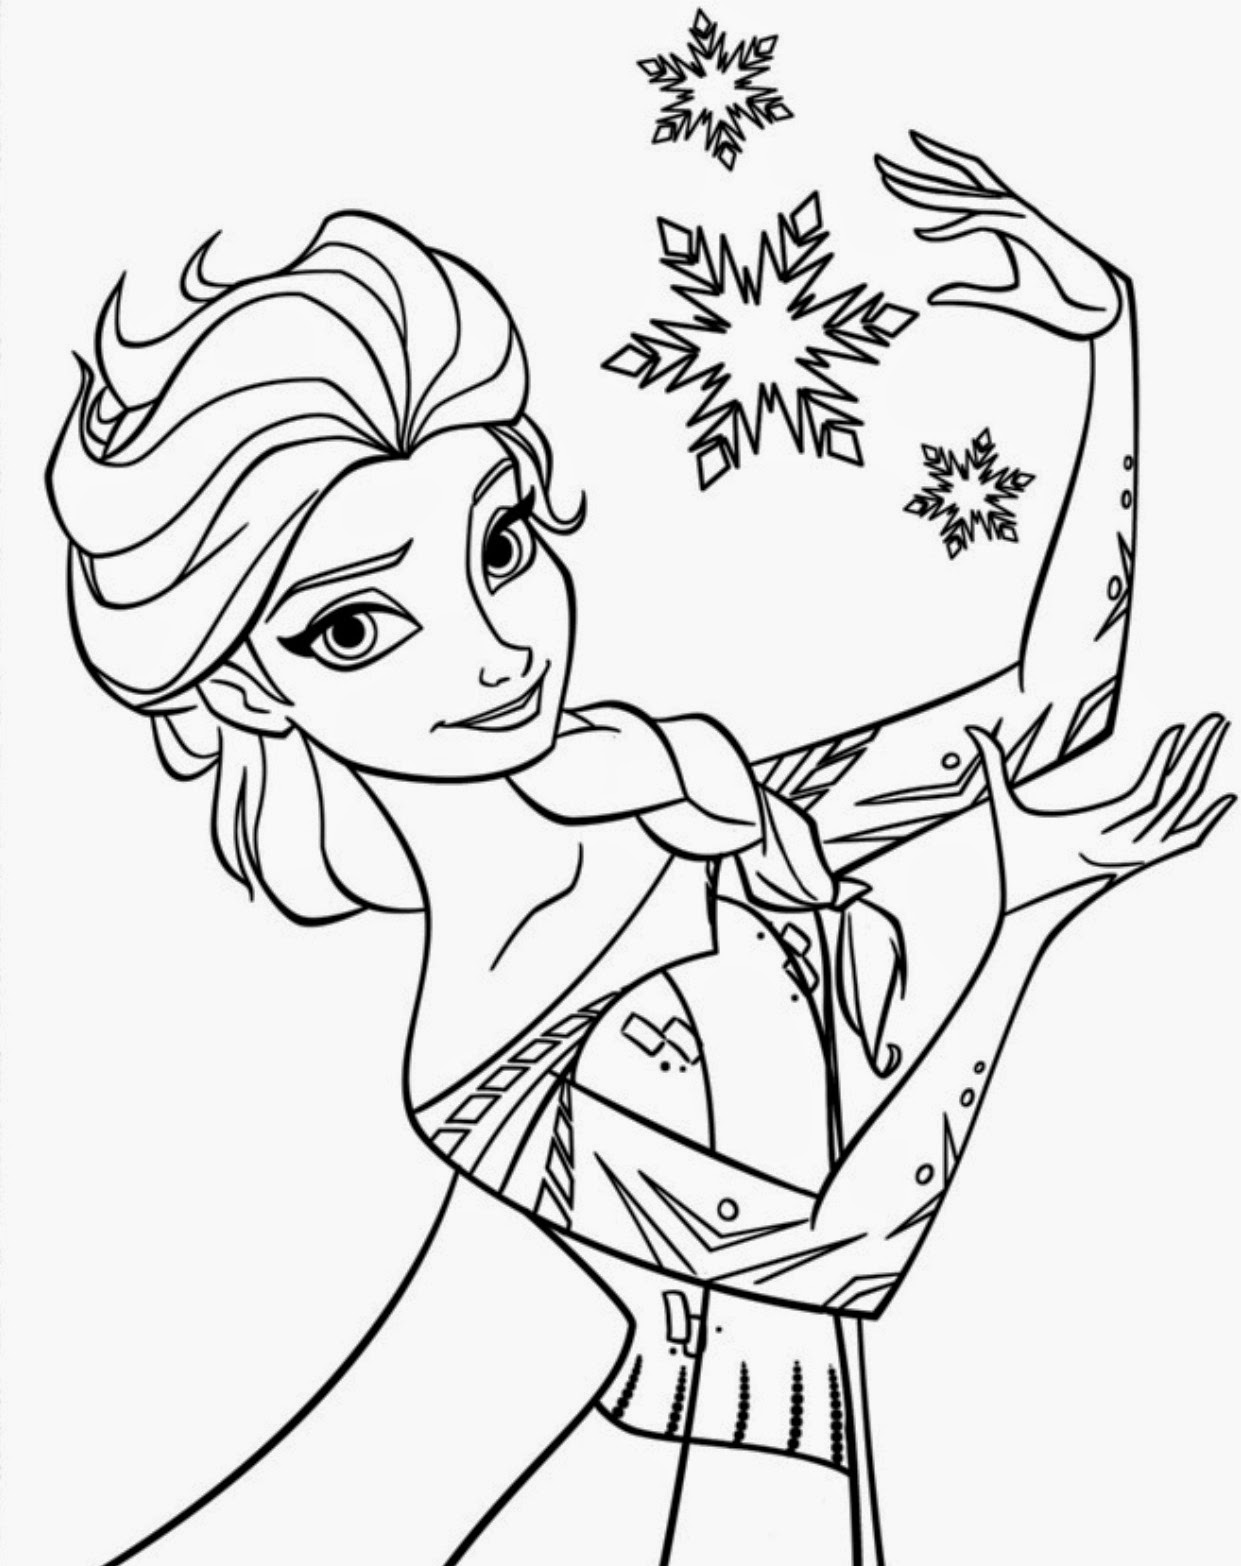 frozen colouring pages frozen 2 coloring pages elsa and anna coloring frozen pages colouring